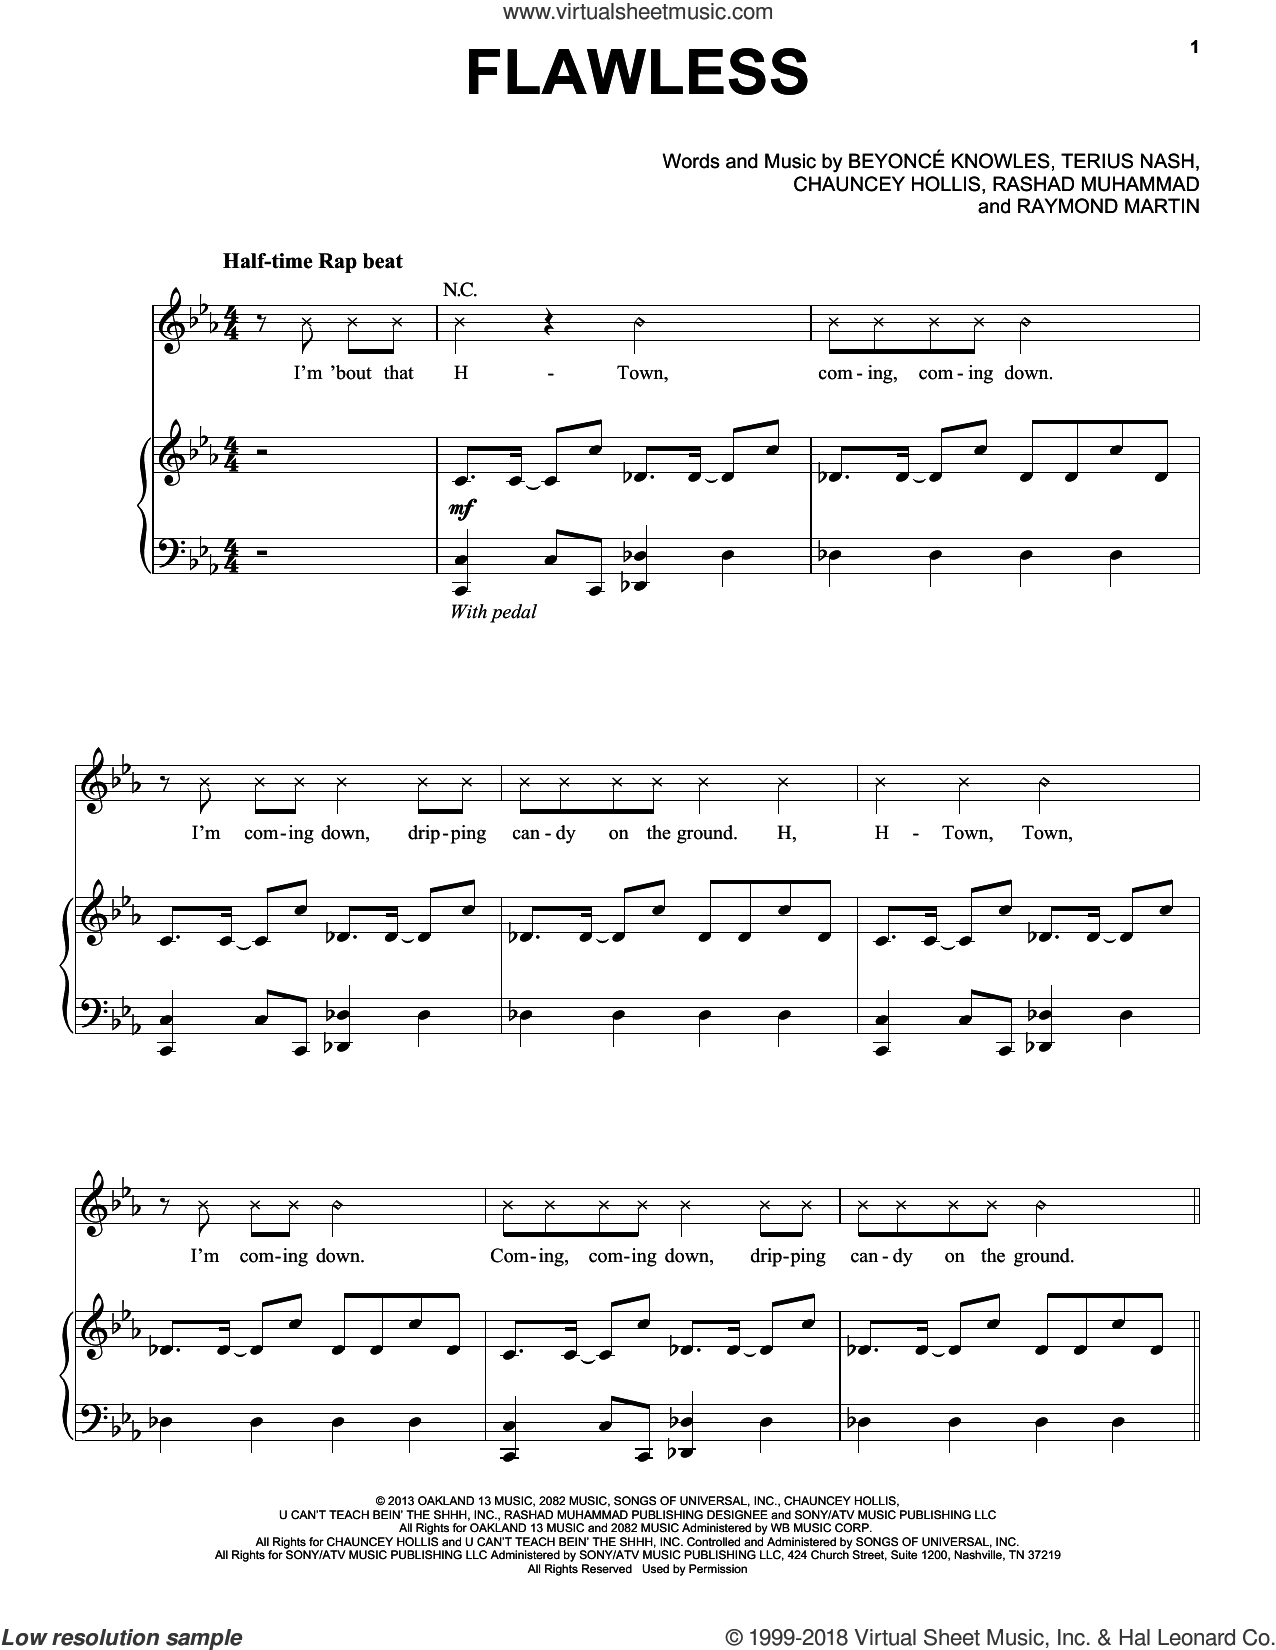 Flawless sheet music for voice, piano or guitar by Beyonce, Beyonce Knowles, Chauncey Hollis, Rashad Muhammad, Raymond Martin and Terius Nash, intermediate skill level